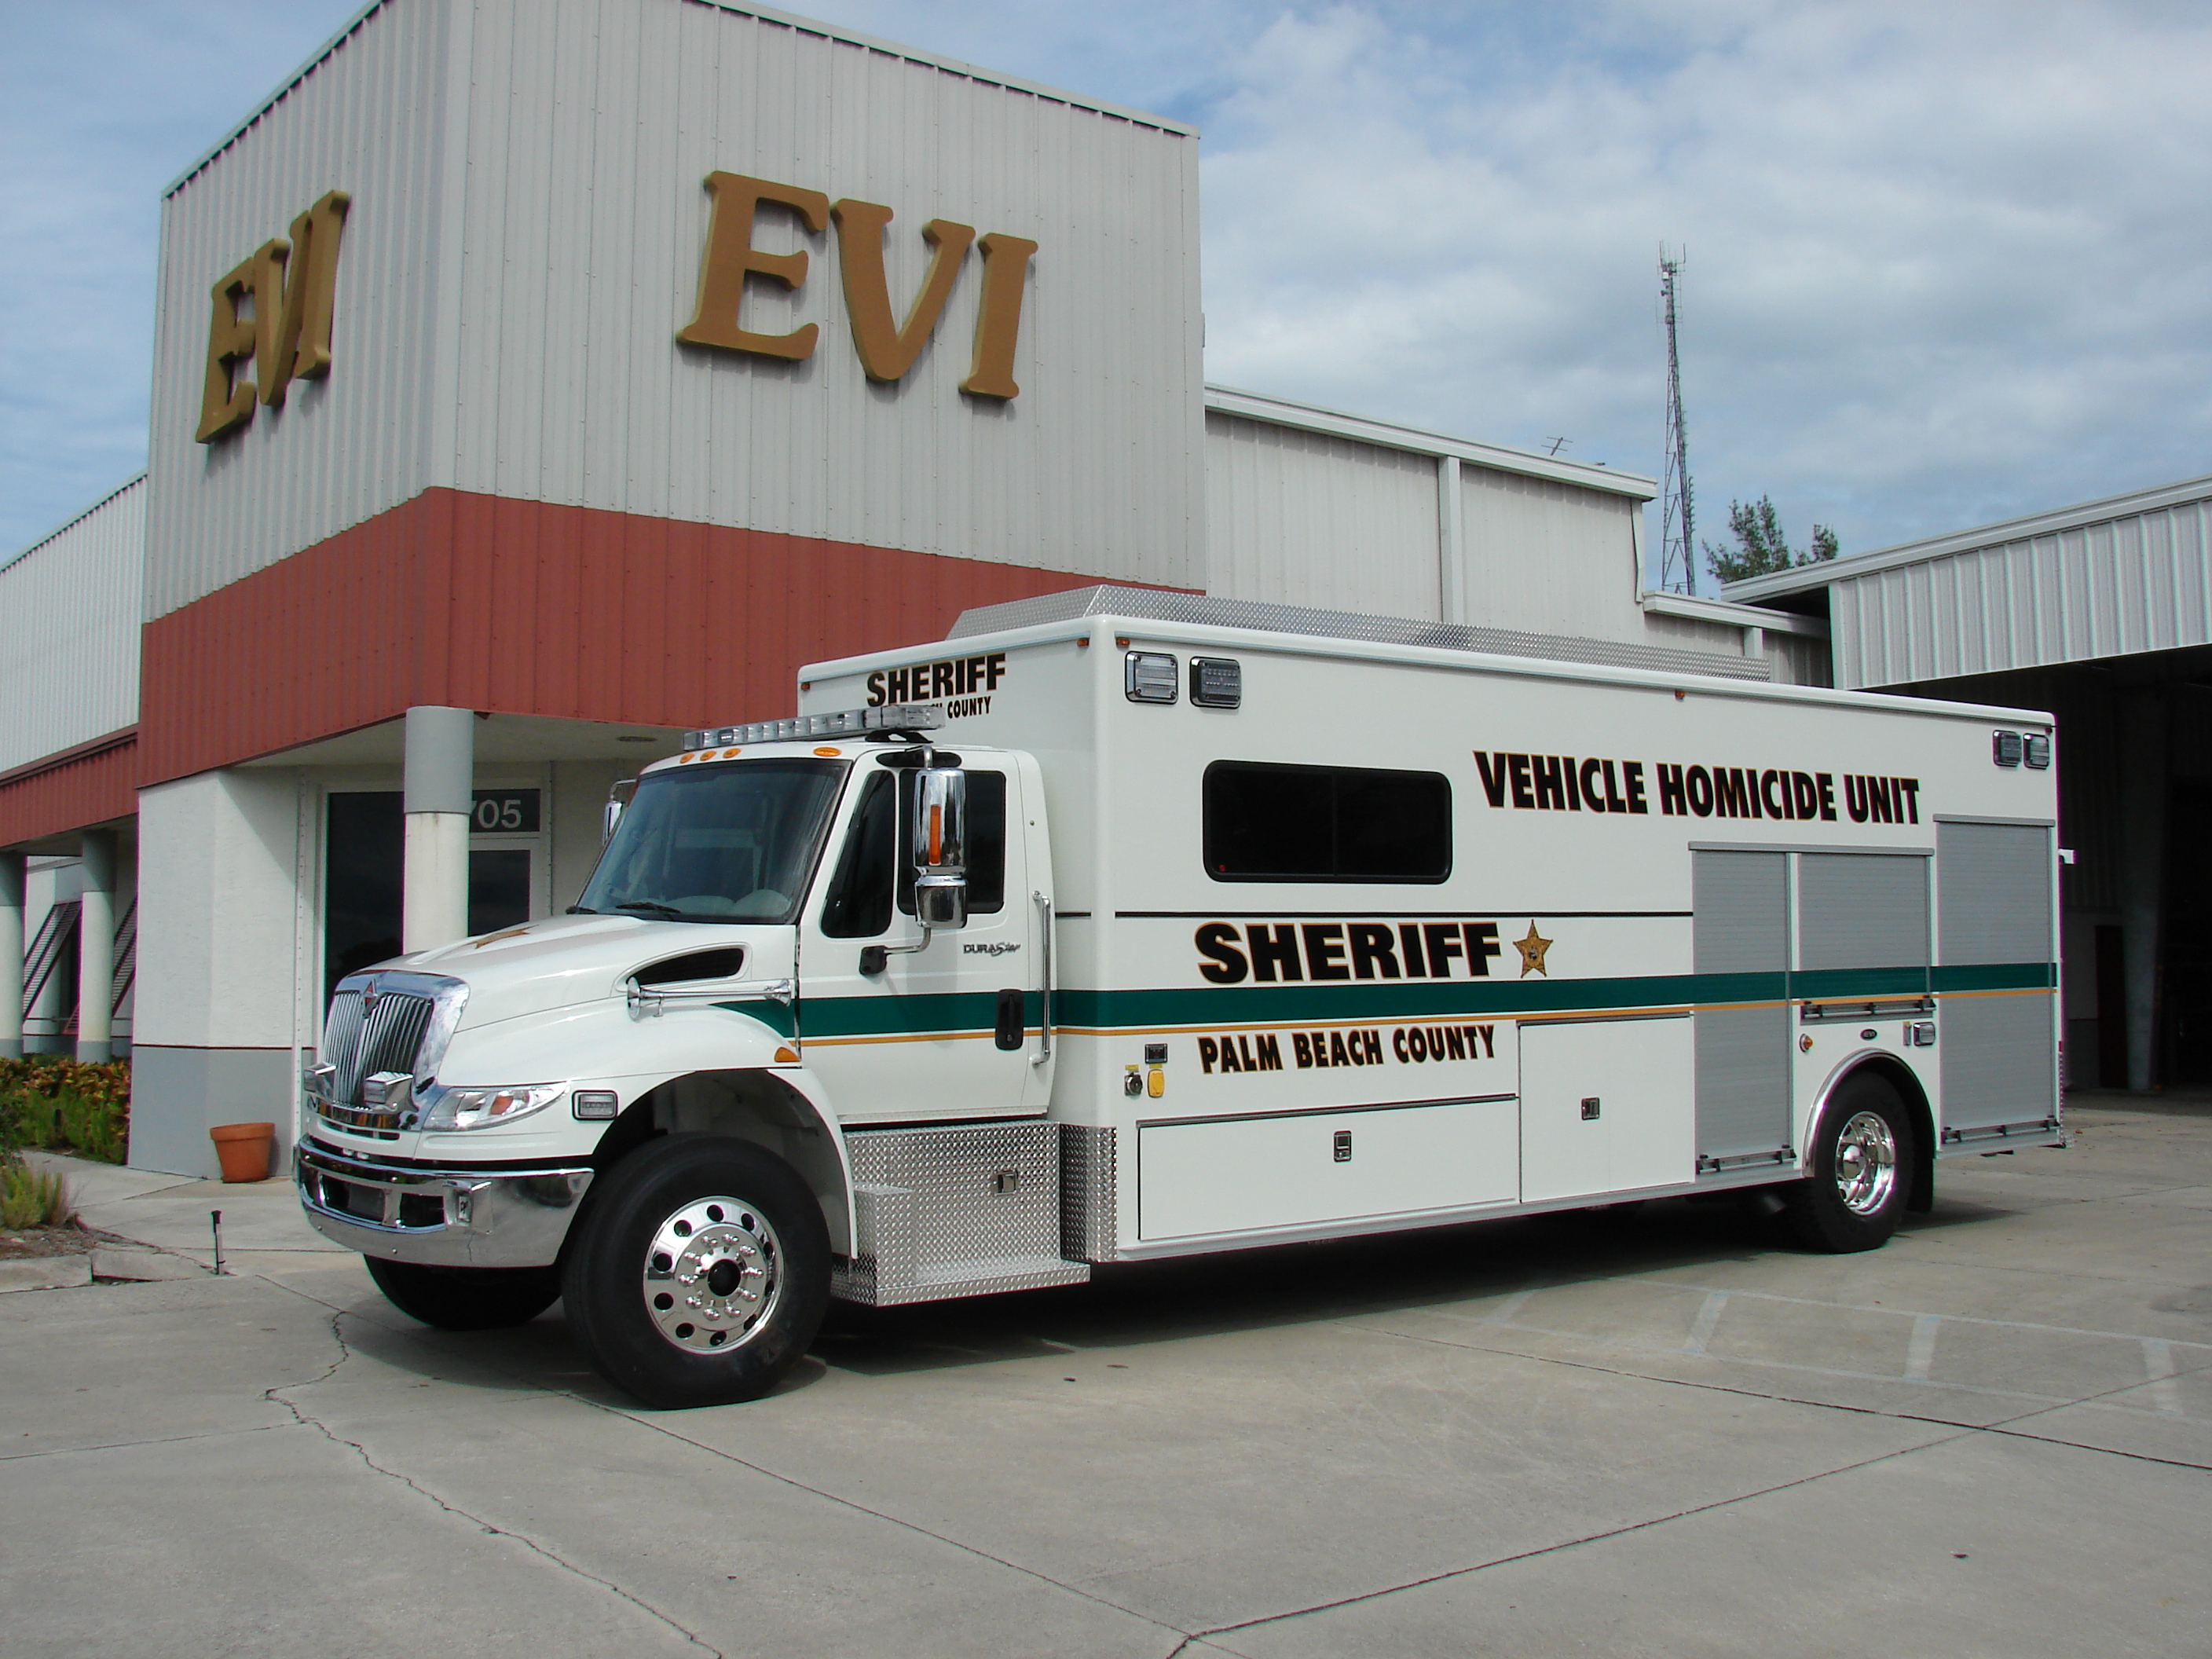 EVI Homicide Investigation Vehicle